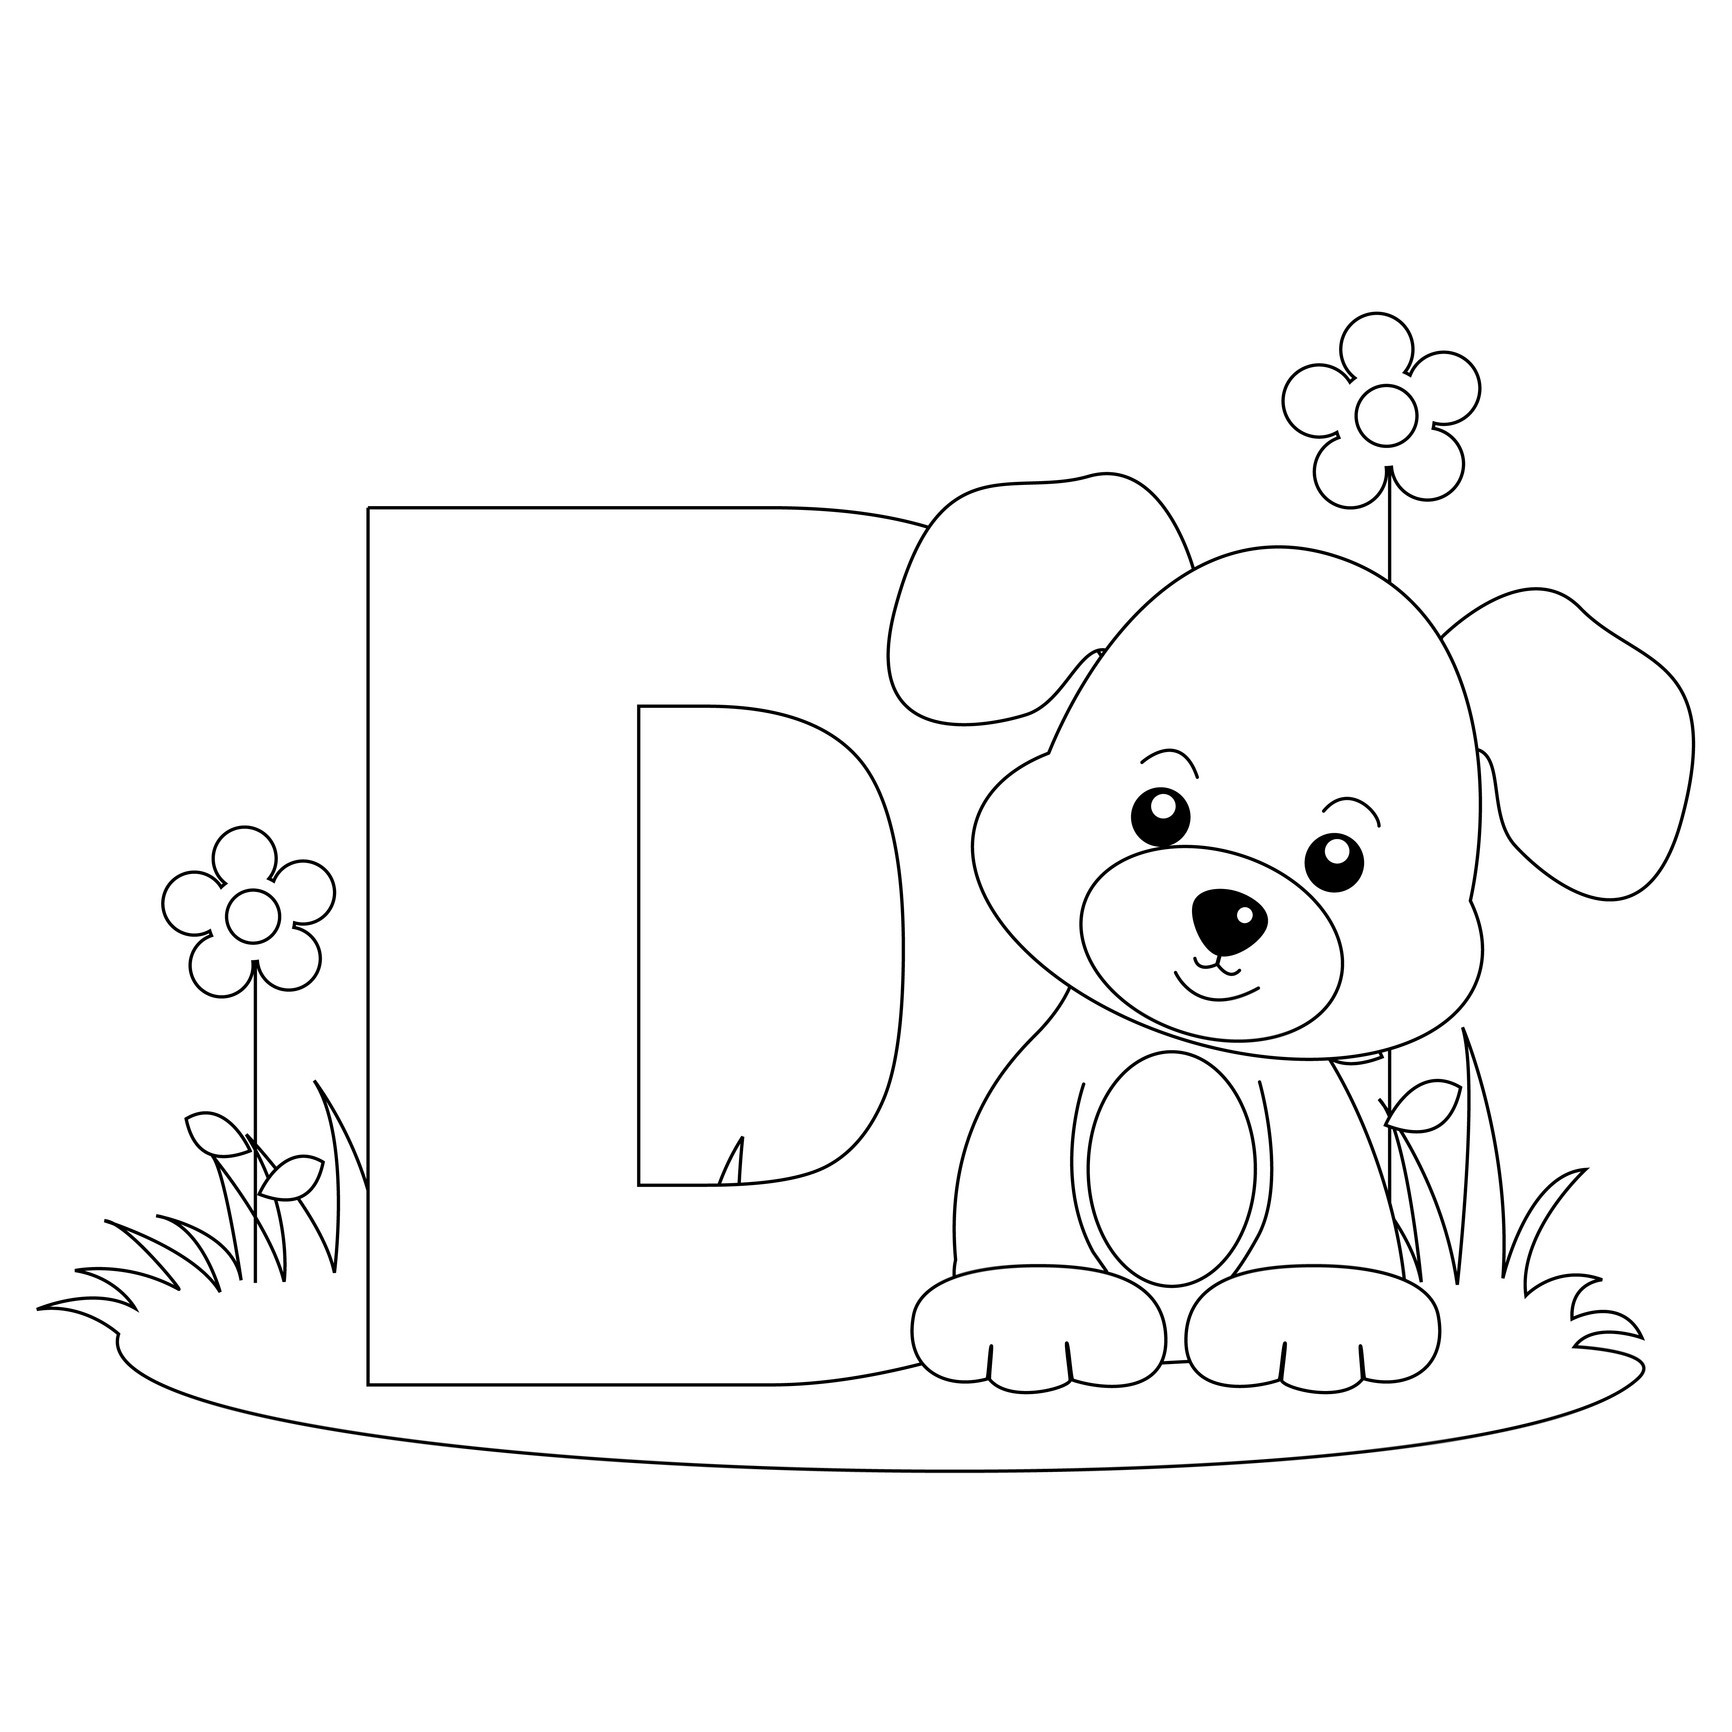 alphabet coloring pages download - photo#32